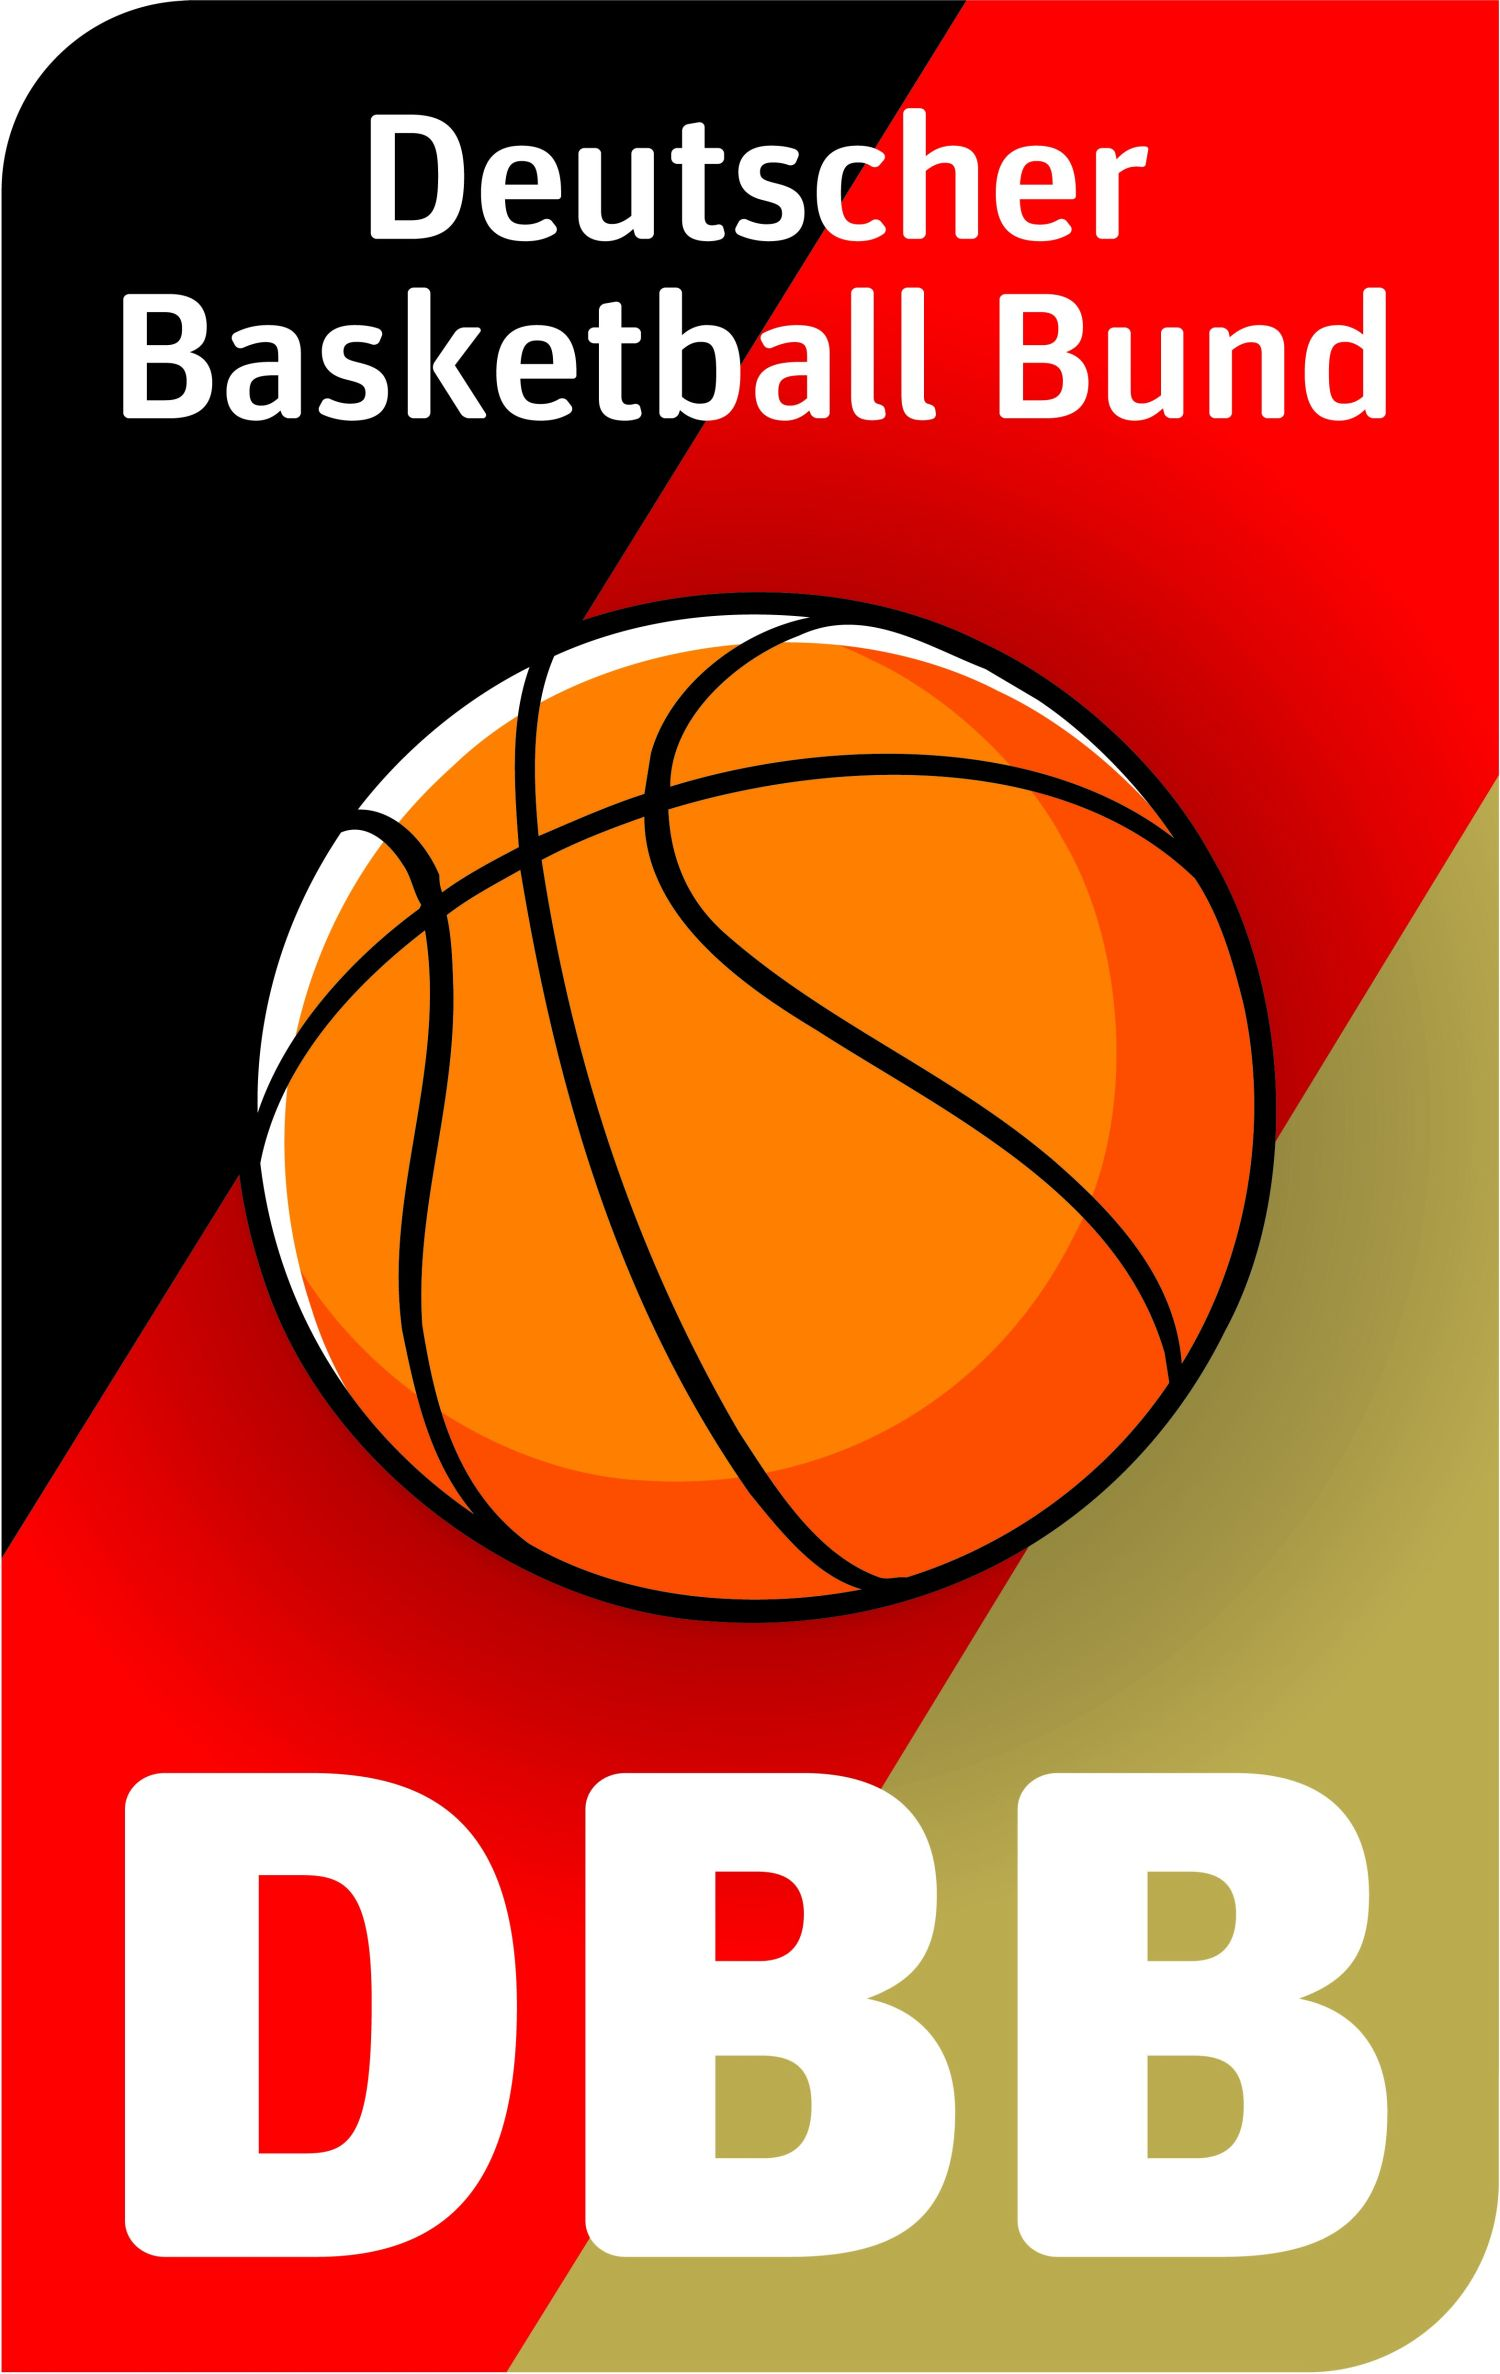 basketball ligen in deutschland